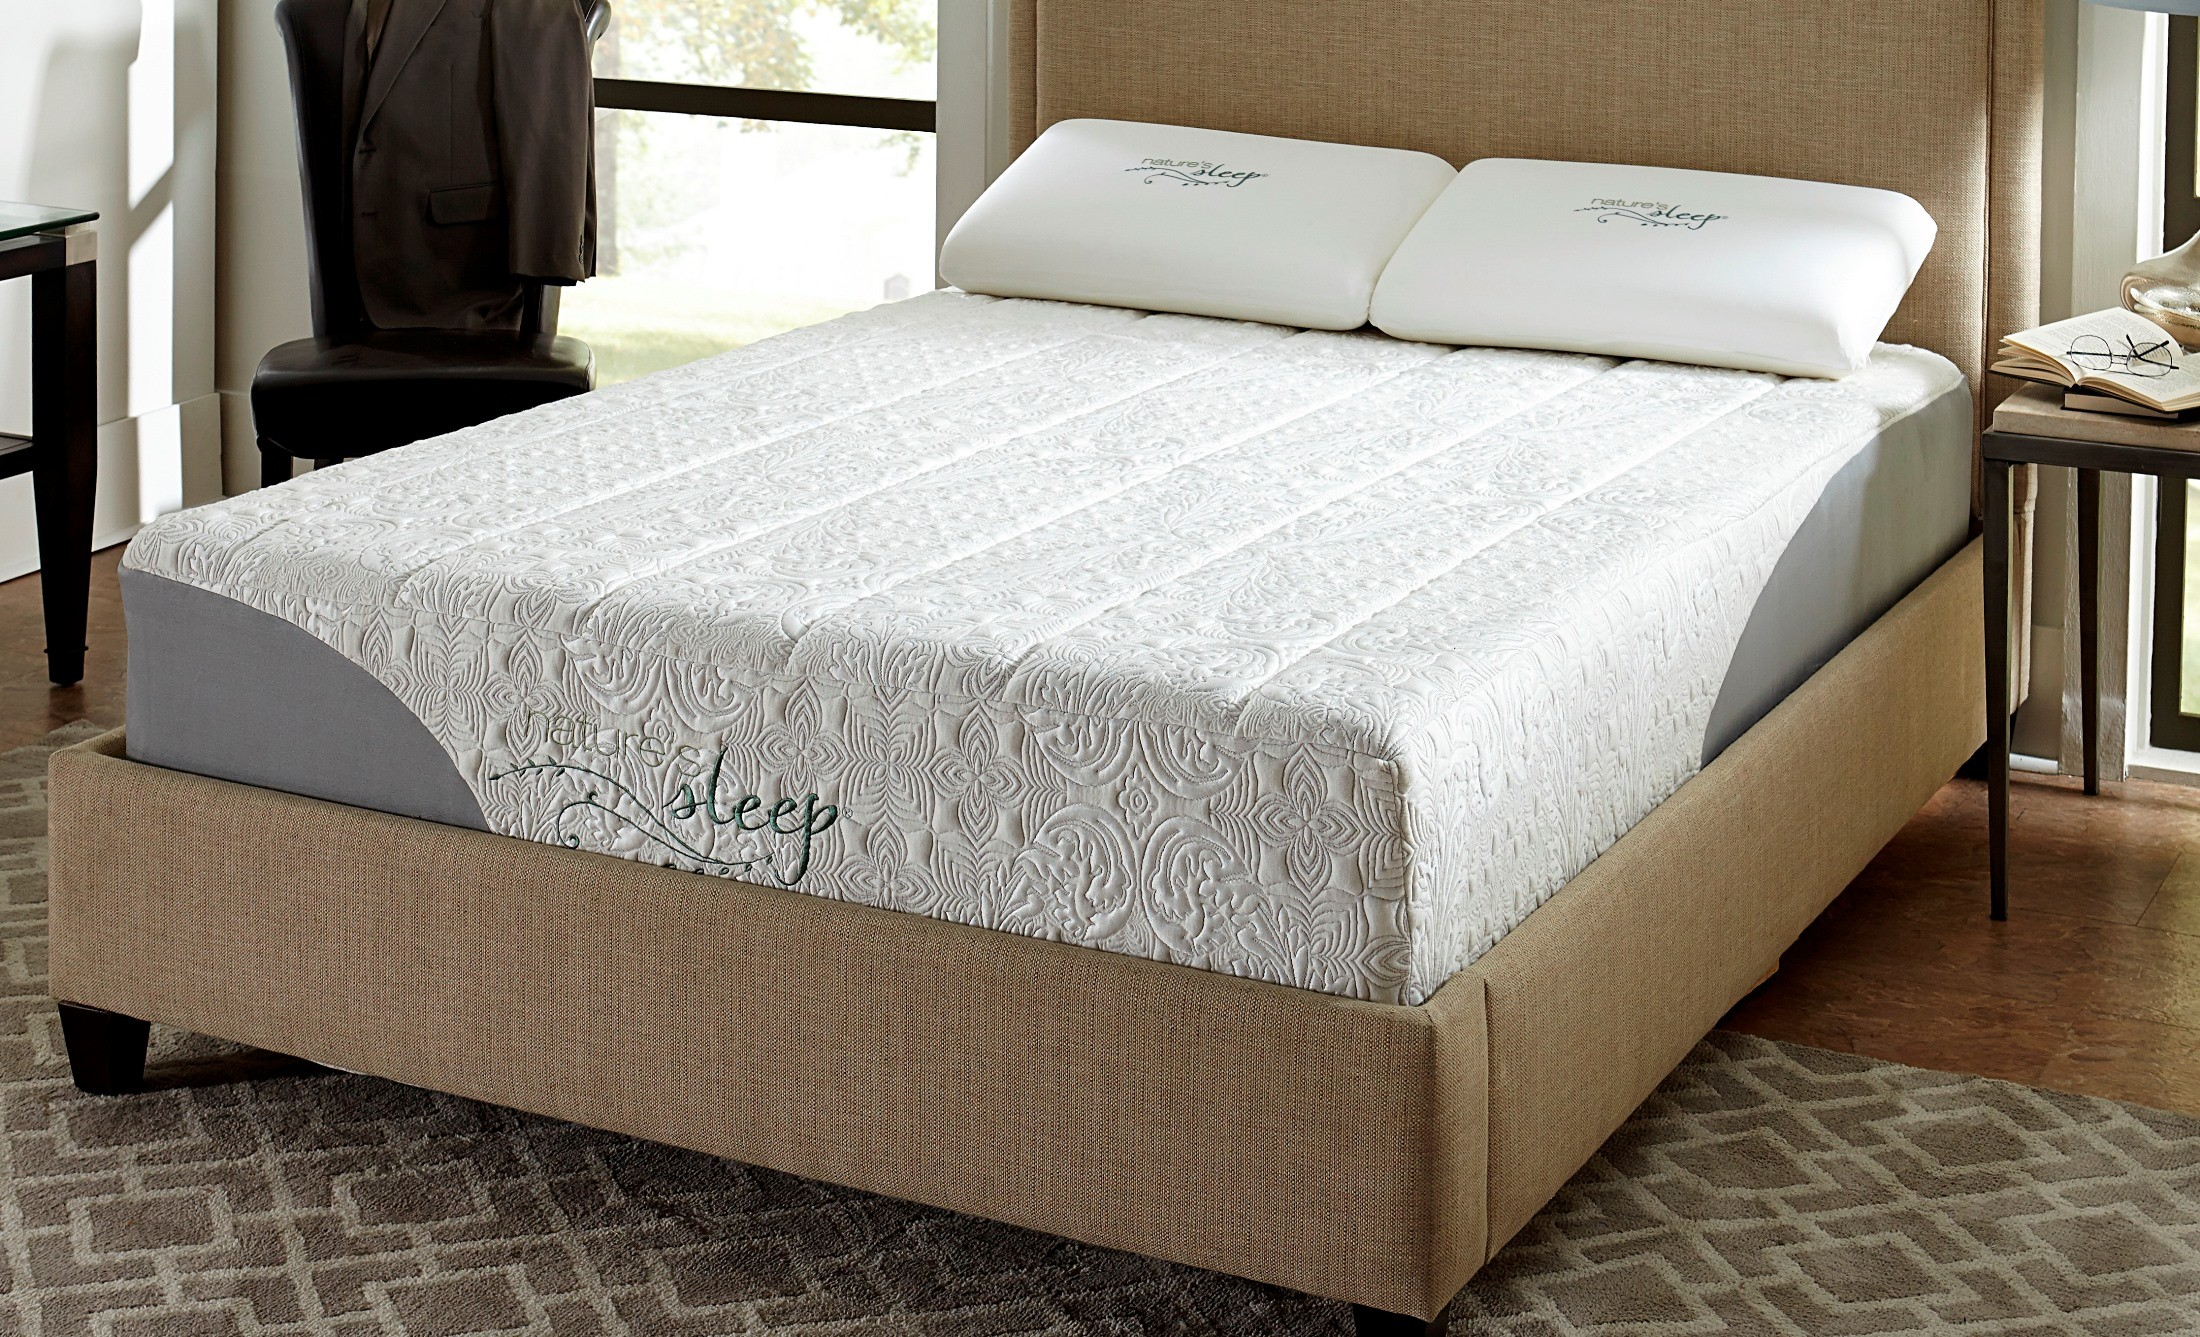 What Are The Health Benefits Of Buying A Memory Foam Mattress?